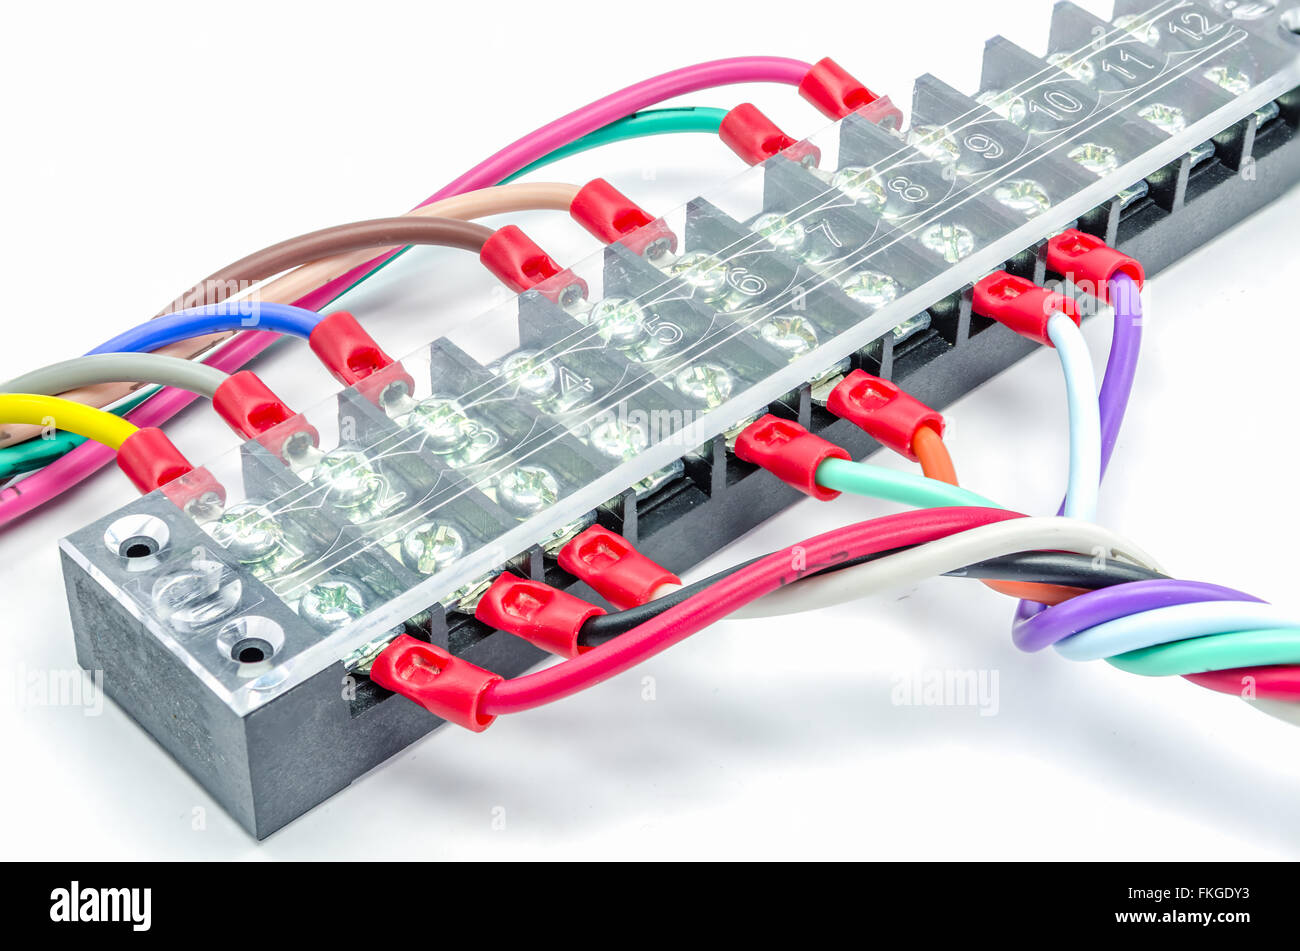 Mains Cable Stock Photos & Mains Cable Stock Images - Alamy